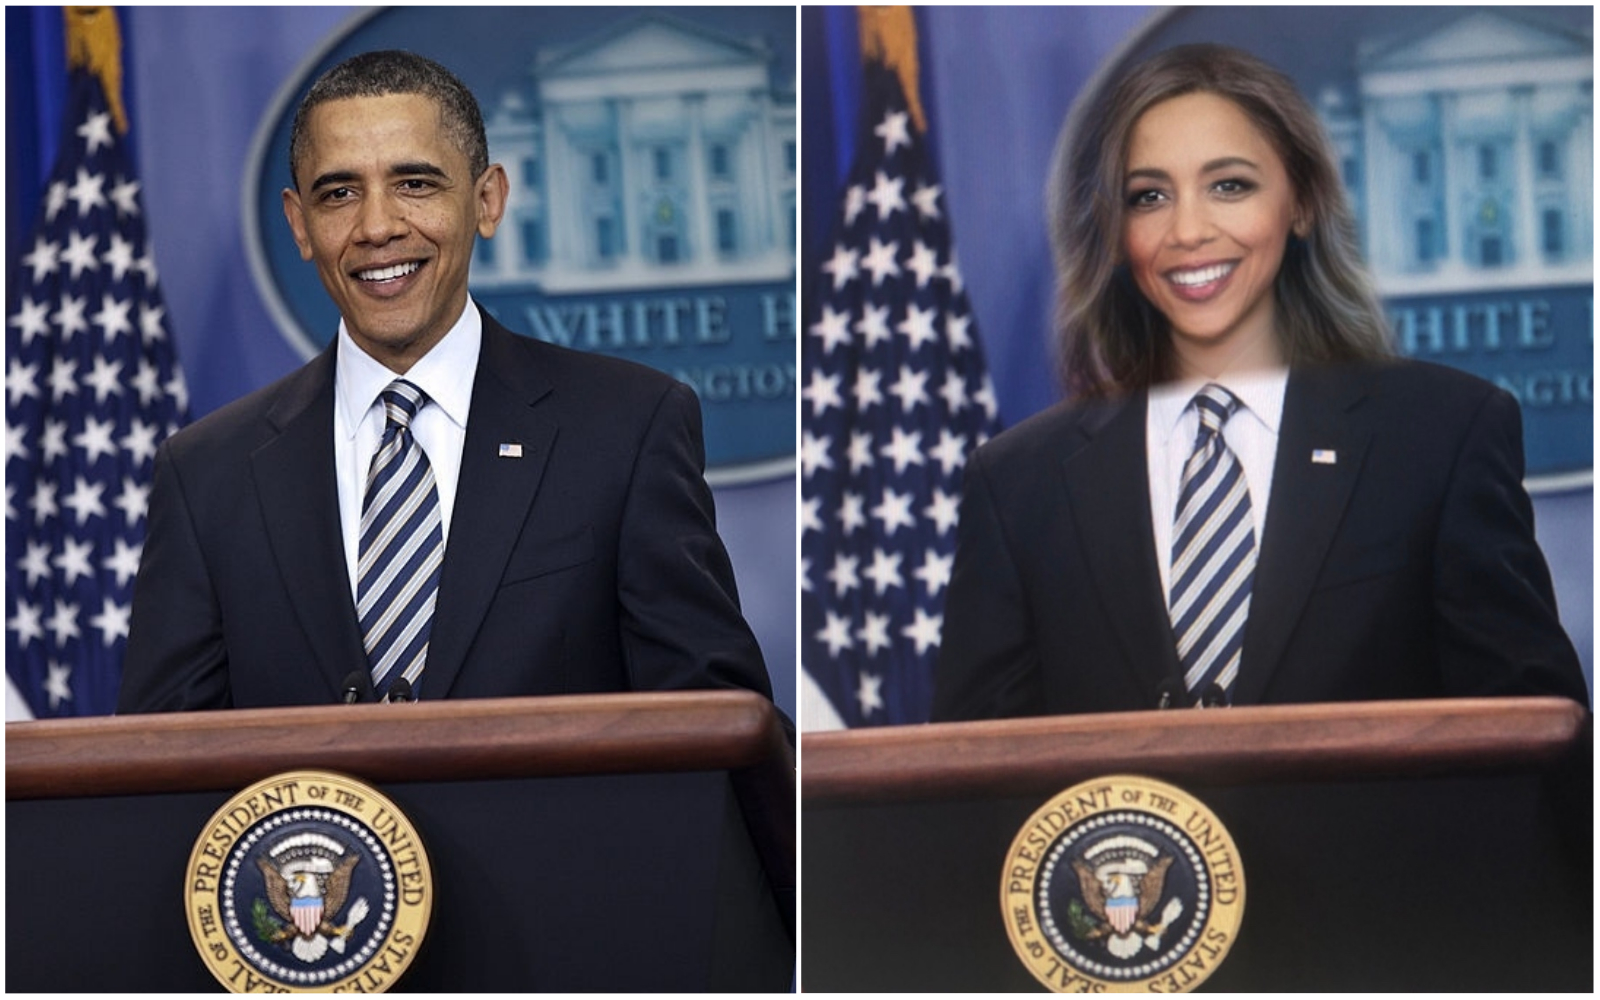 Here's the problem with using the gender-swap Snapchat filter to make female presidents